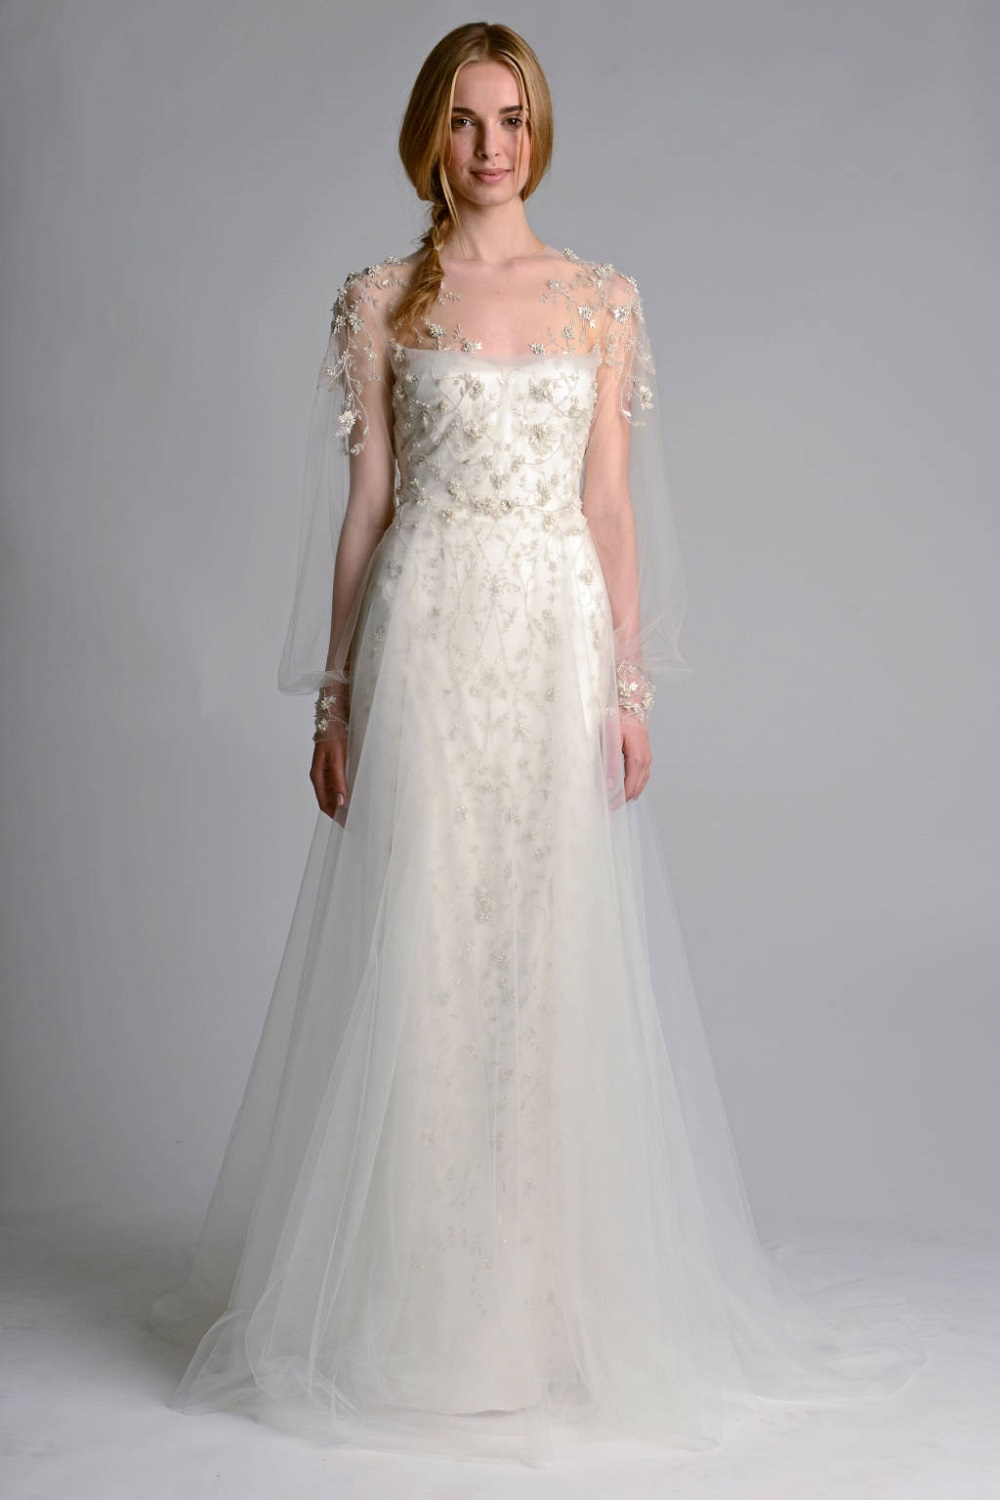 Top wedding dress designers 2014 2 wedding inspiration for Famous wedding dress designers